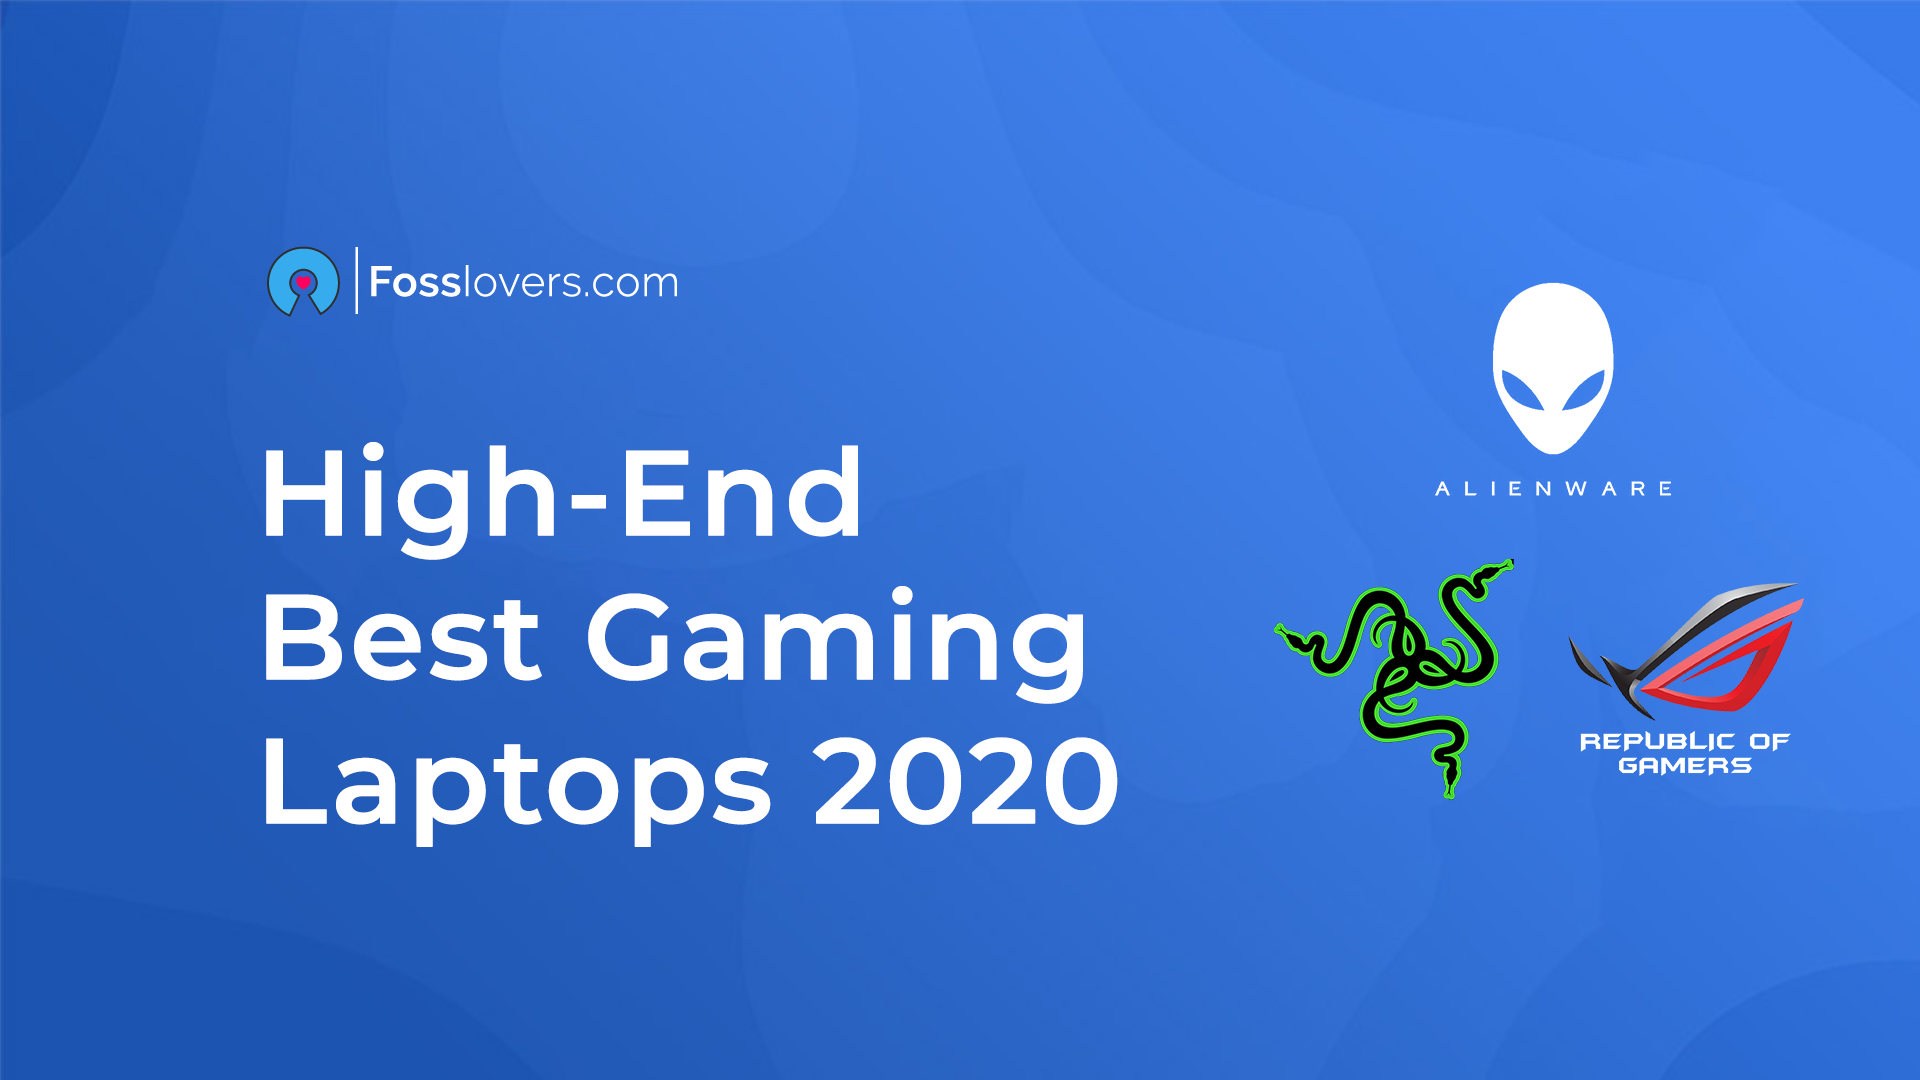 High-End Best Gaming Laptops 2020